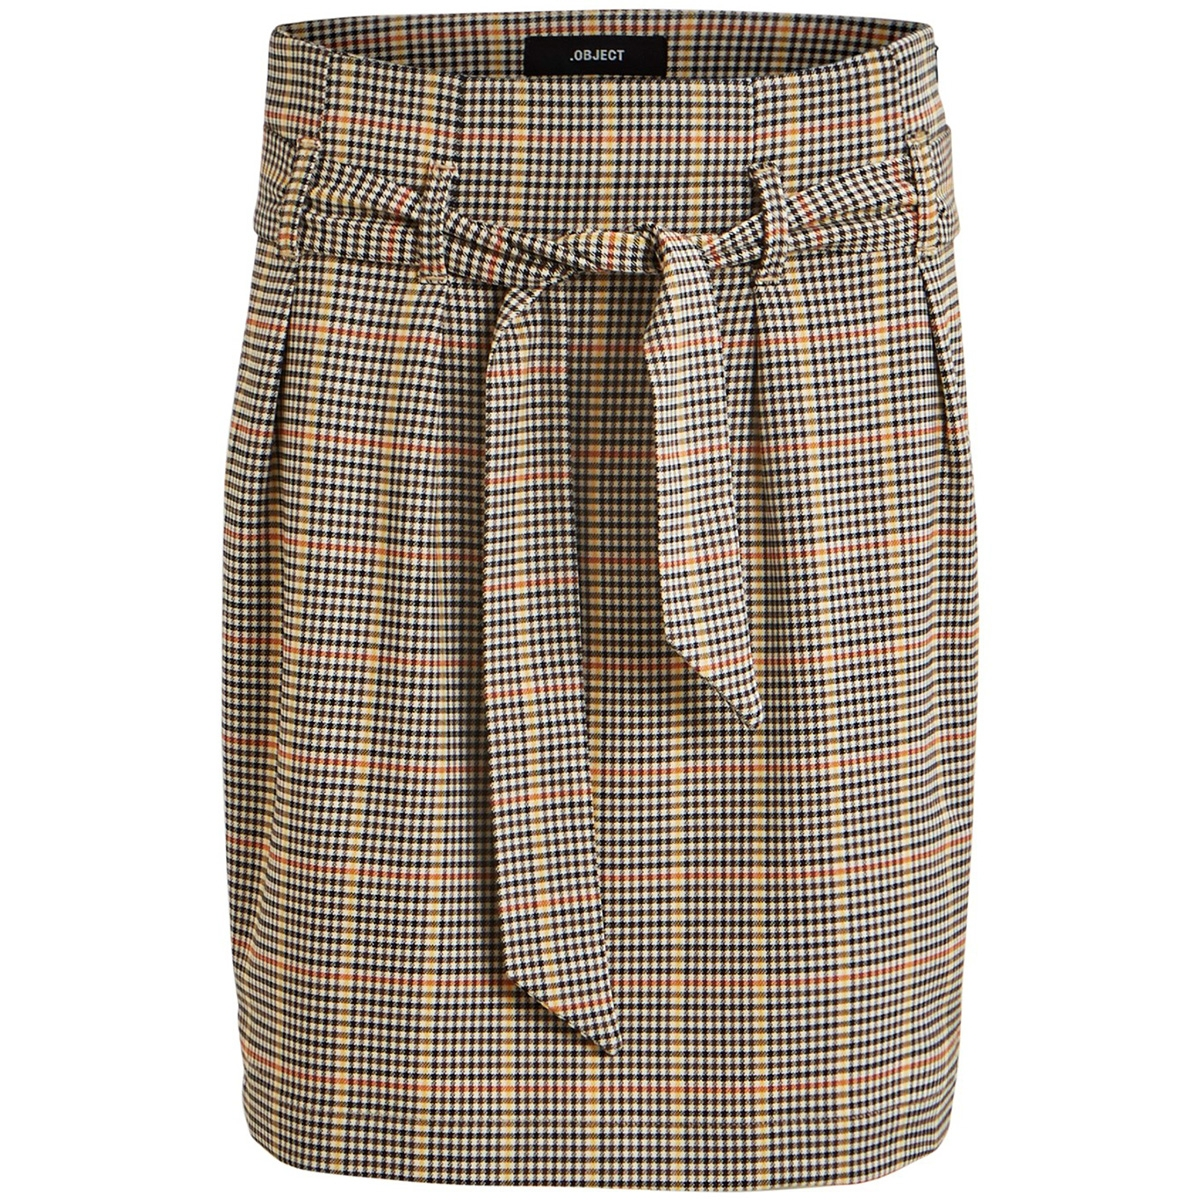 objlisa abella mini skirt seasonal 23030922 object rok brown patina/checks